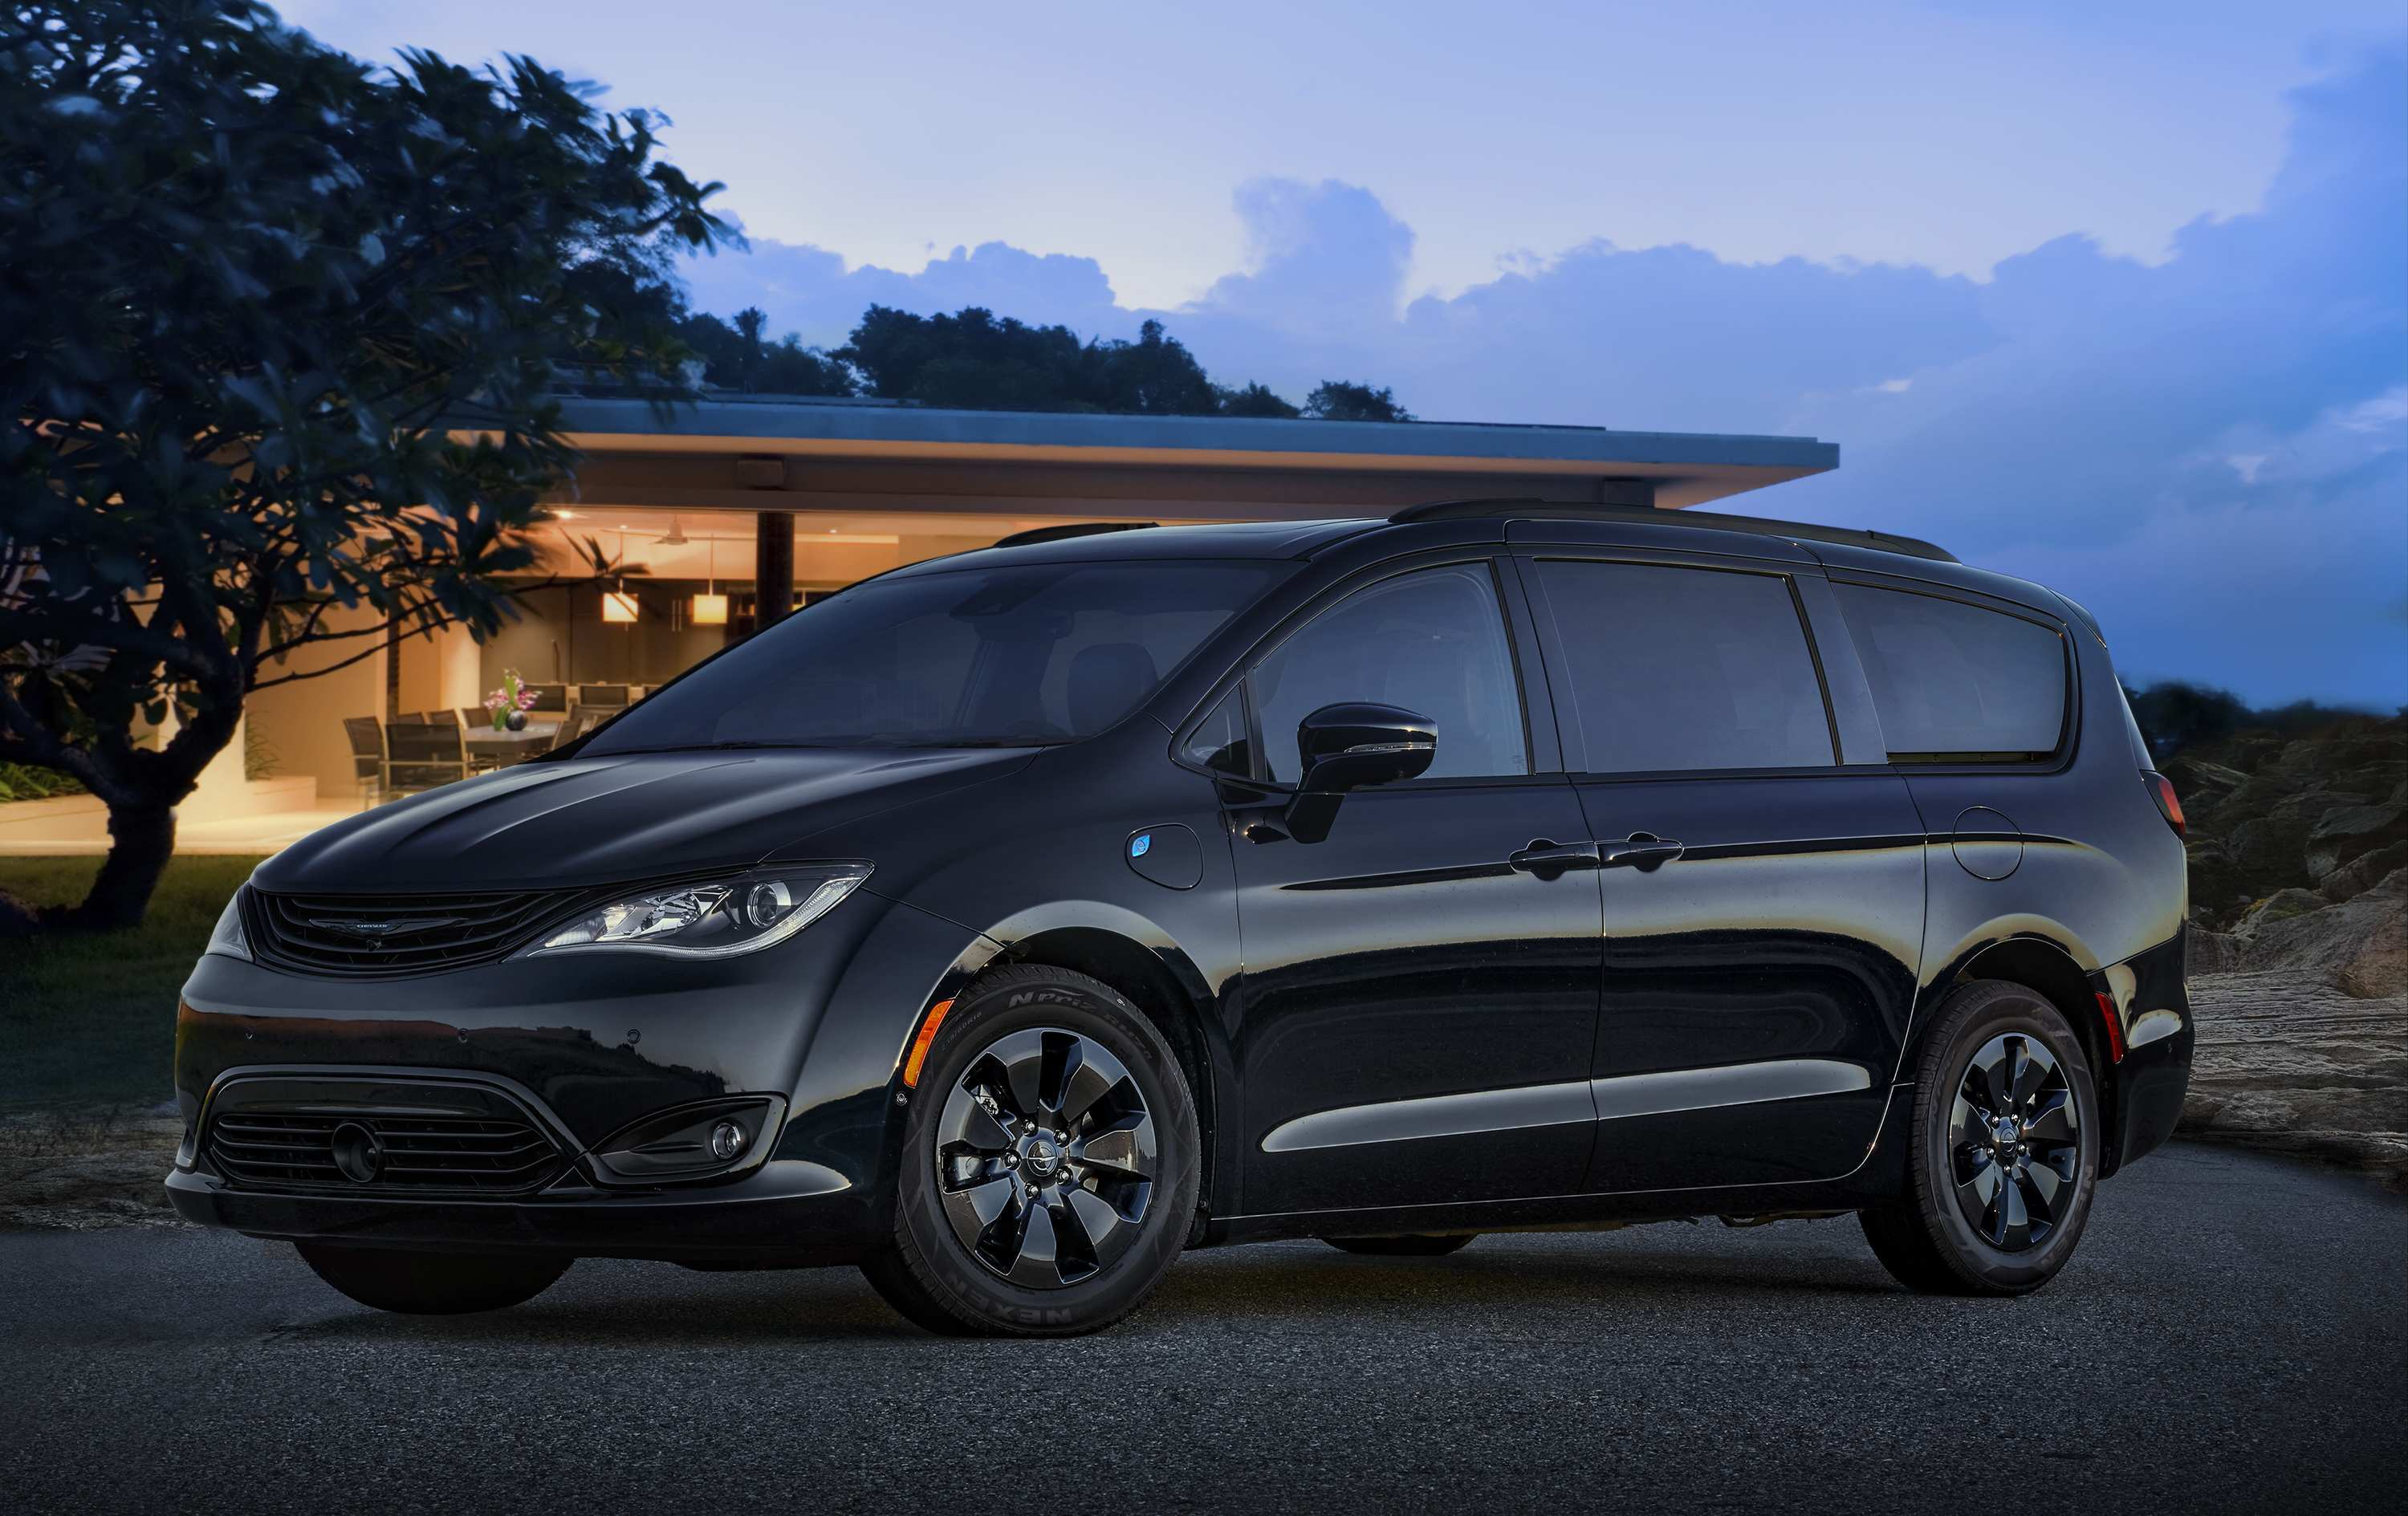 57 All New 2019 Chrysler Pacifica Review New Review